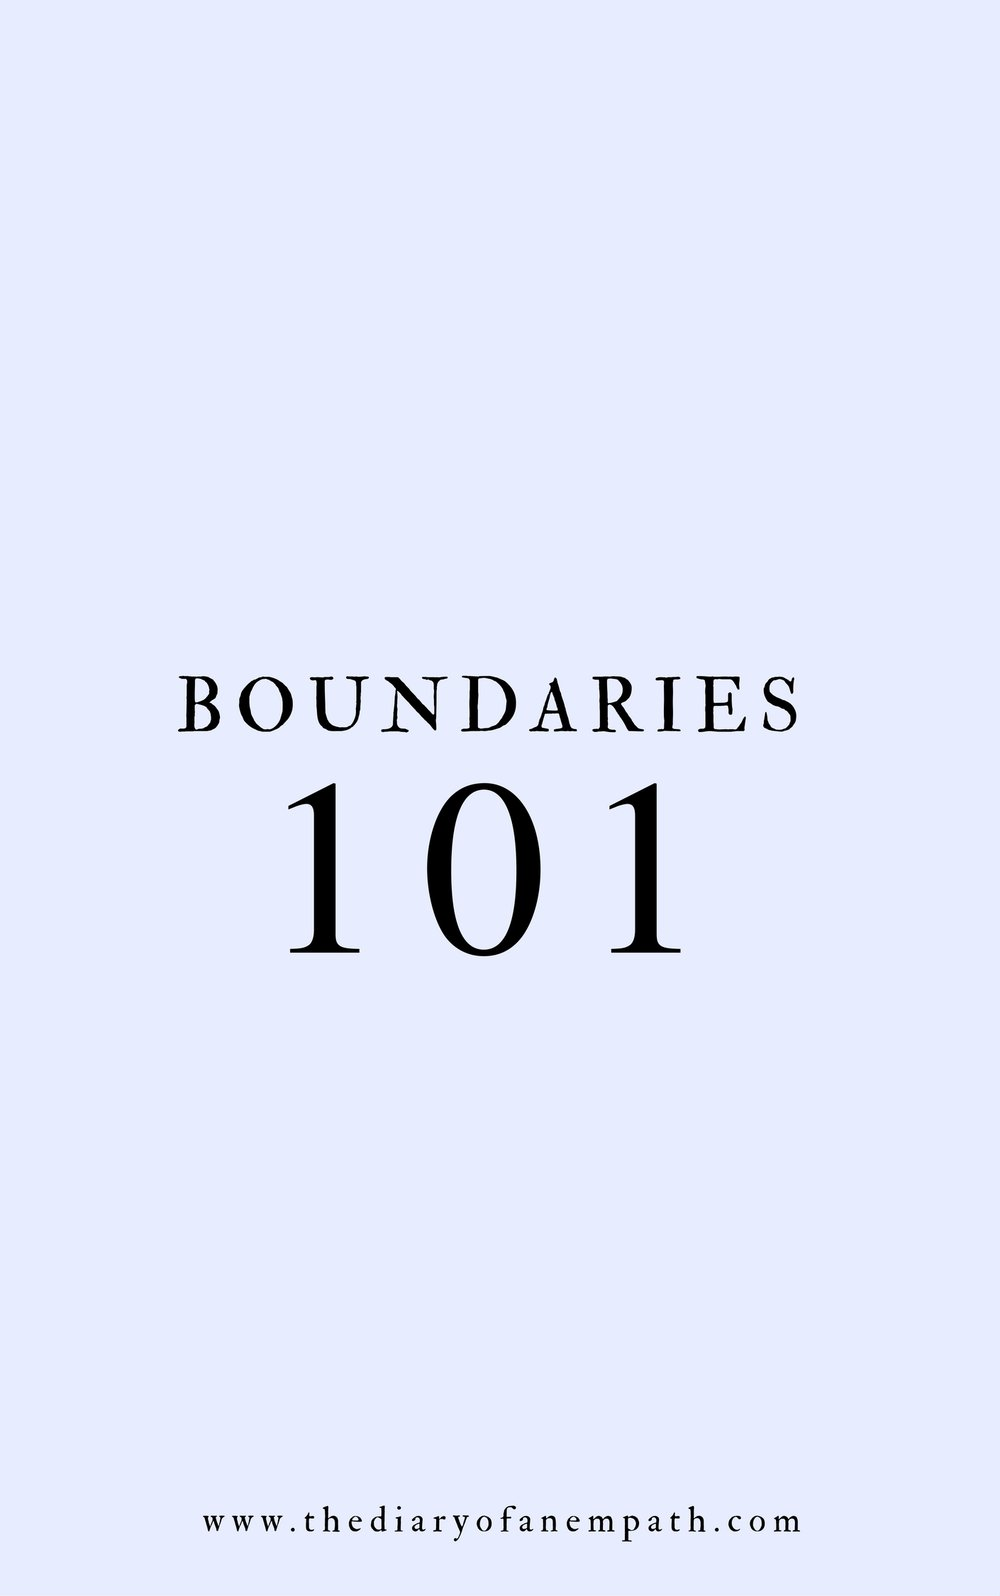 how to set boundaries, thediaryofanempath.com